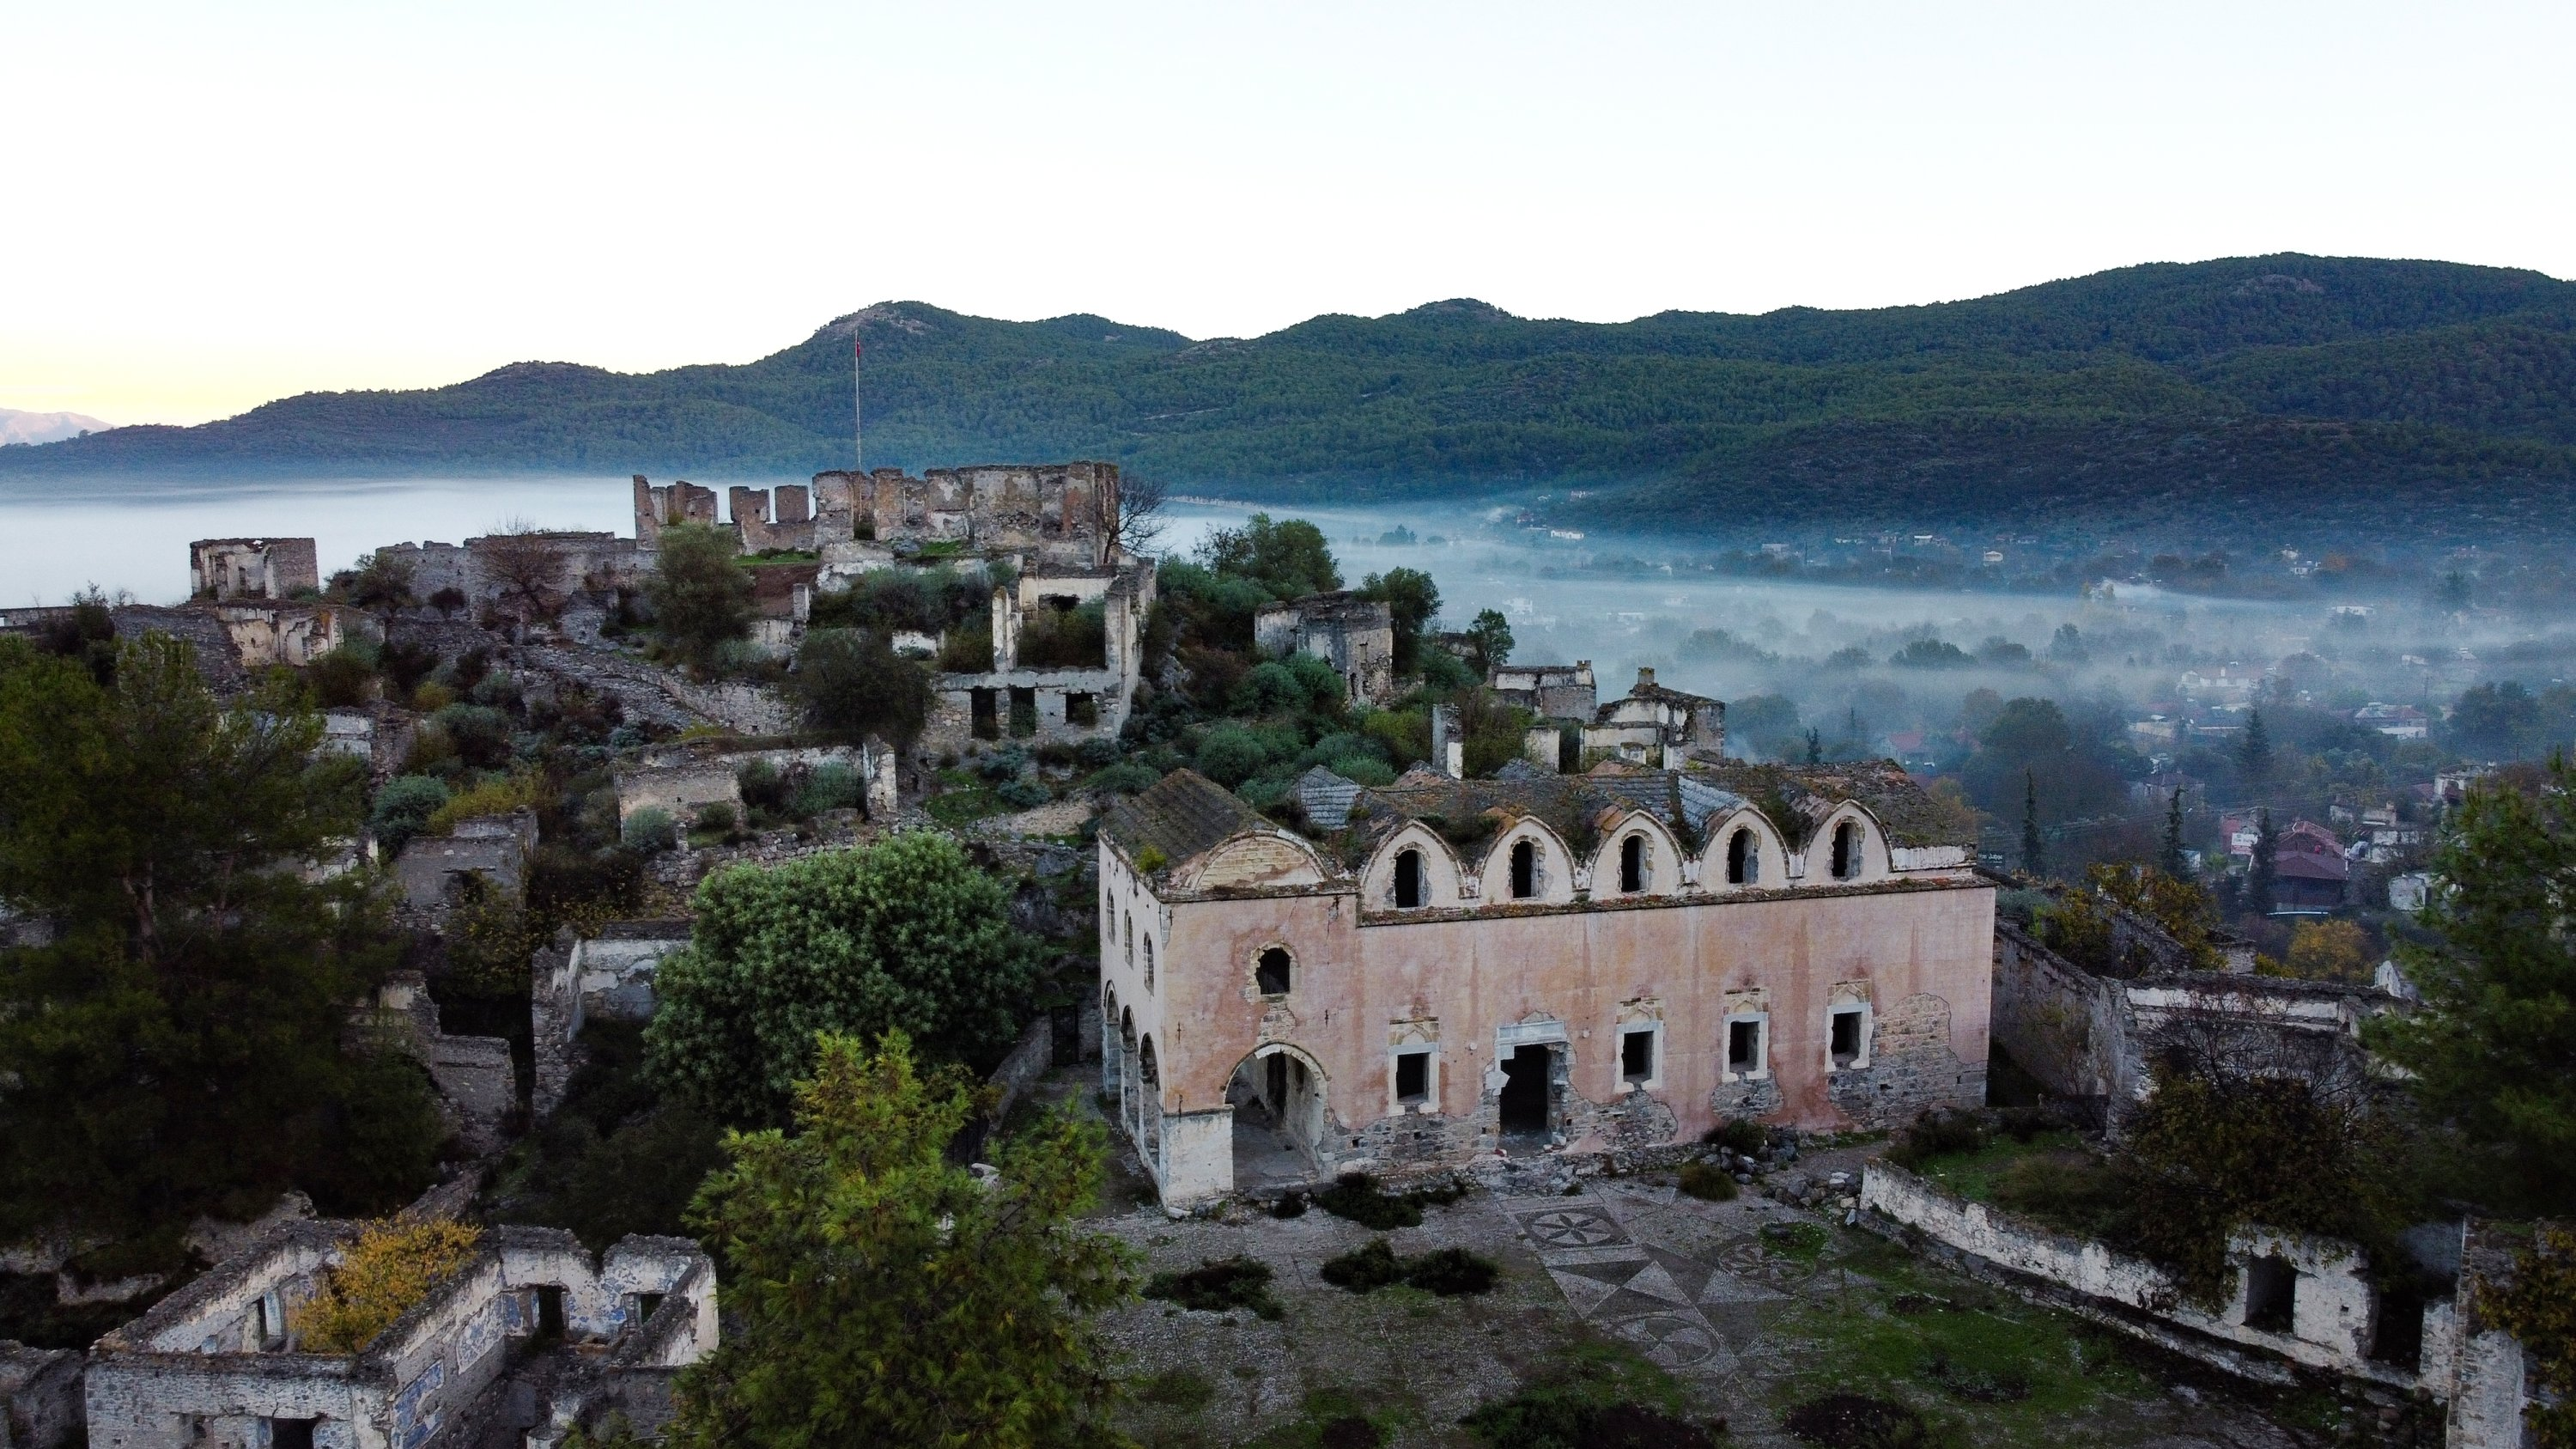 Abandoned buildings are seen through the fog in Kayaköy, Muğla province, Dec. 11, 2020. (AA Photo)